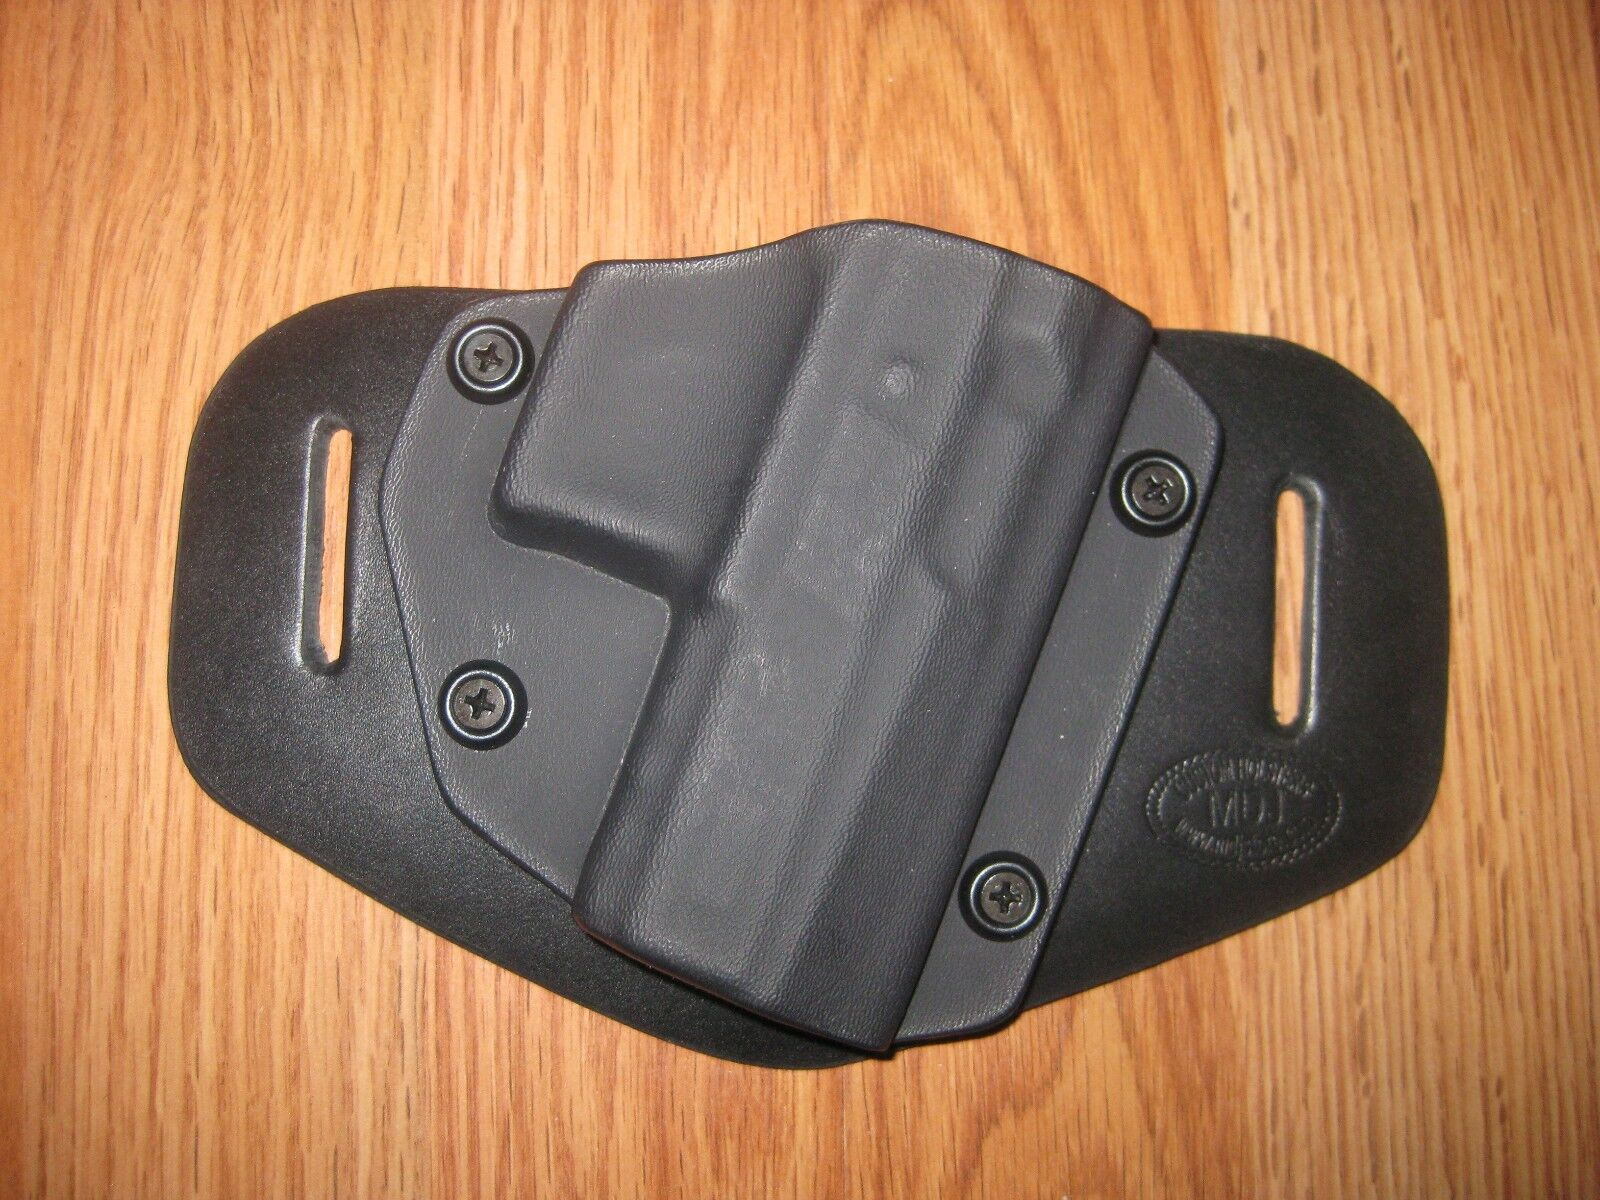 OWB Kydex Leather Hybrid Holster with adjustable retention for CZ